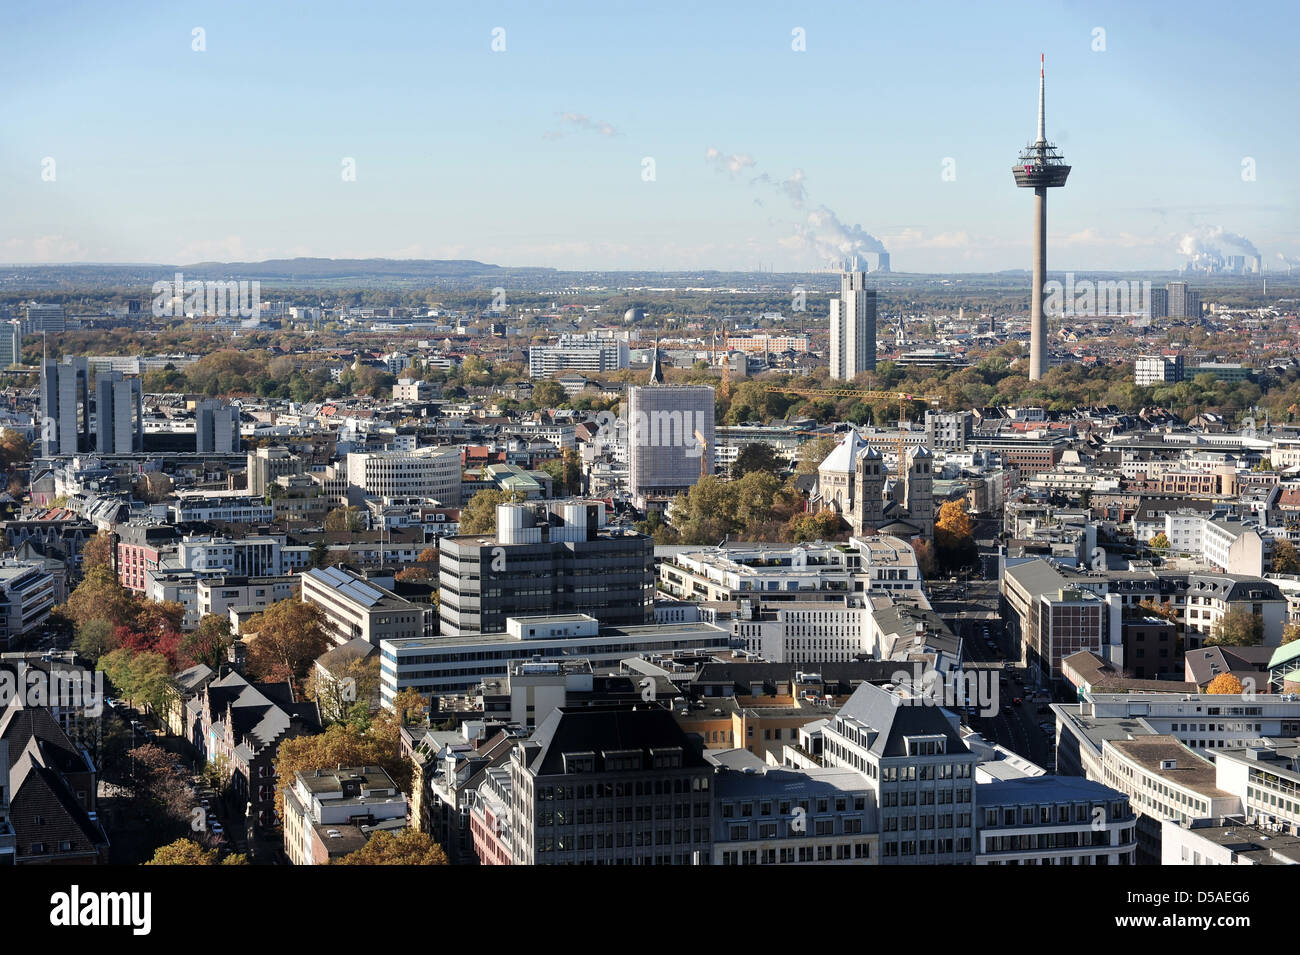 colonius telecommunications tower cologne stock photos colonius telecommunications tower. Black Bedroom Furniture Sets. Home Design Ideas